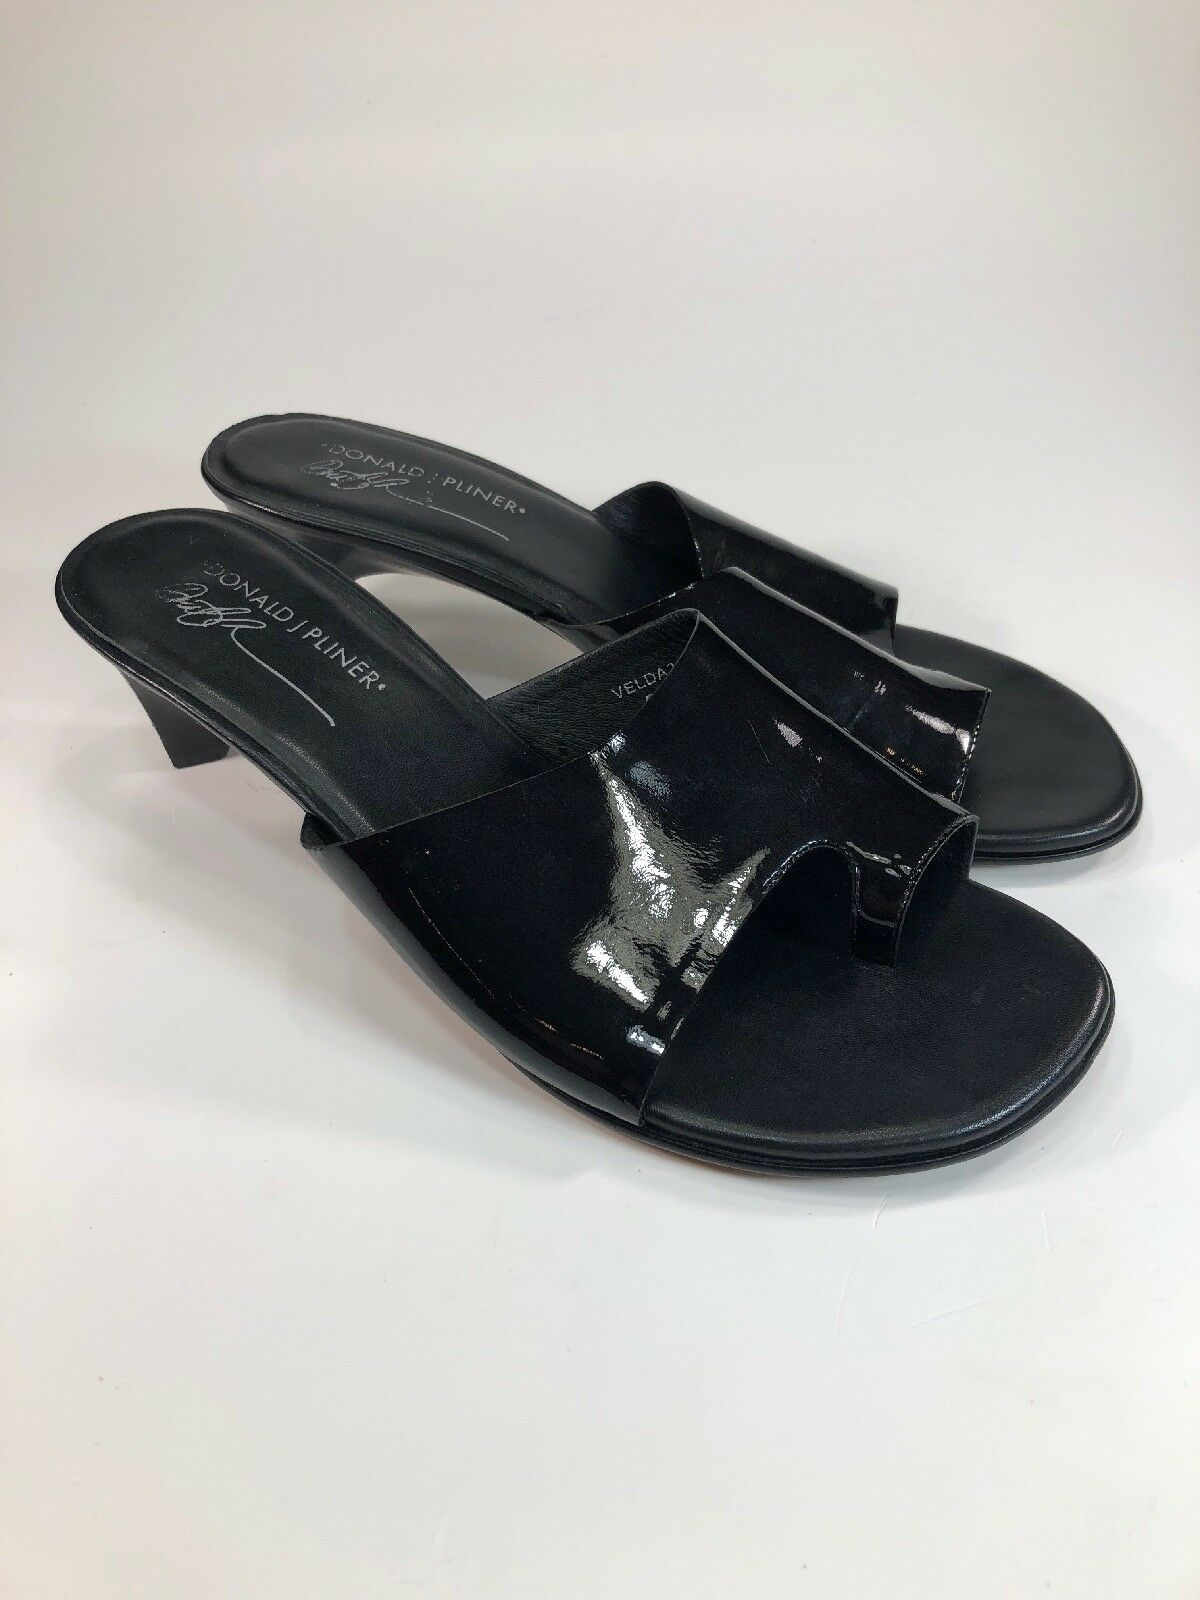 Donald Pliner  198 Velda 2 Black Patent Leather Toe Sandals Womens Size 9.5 M